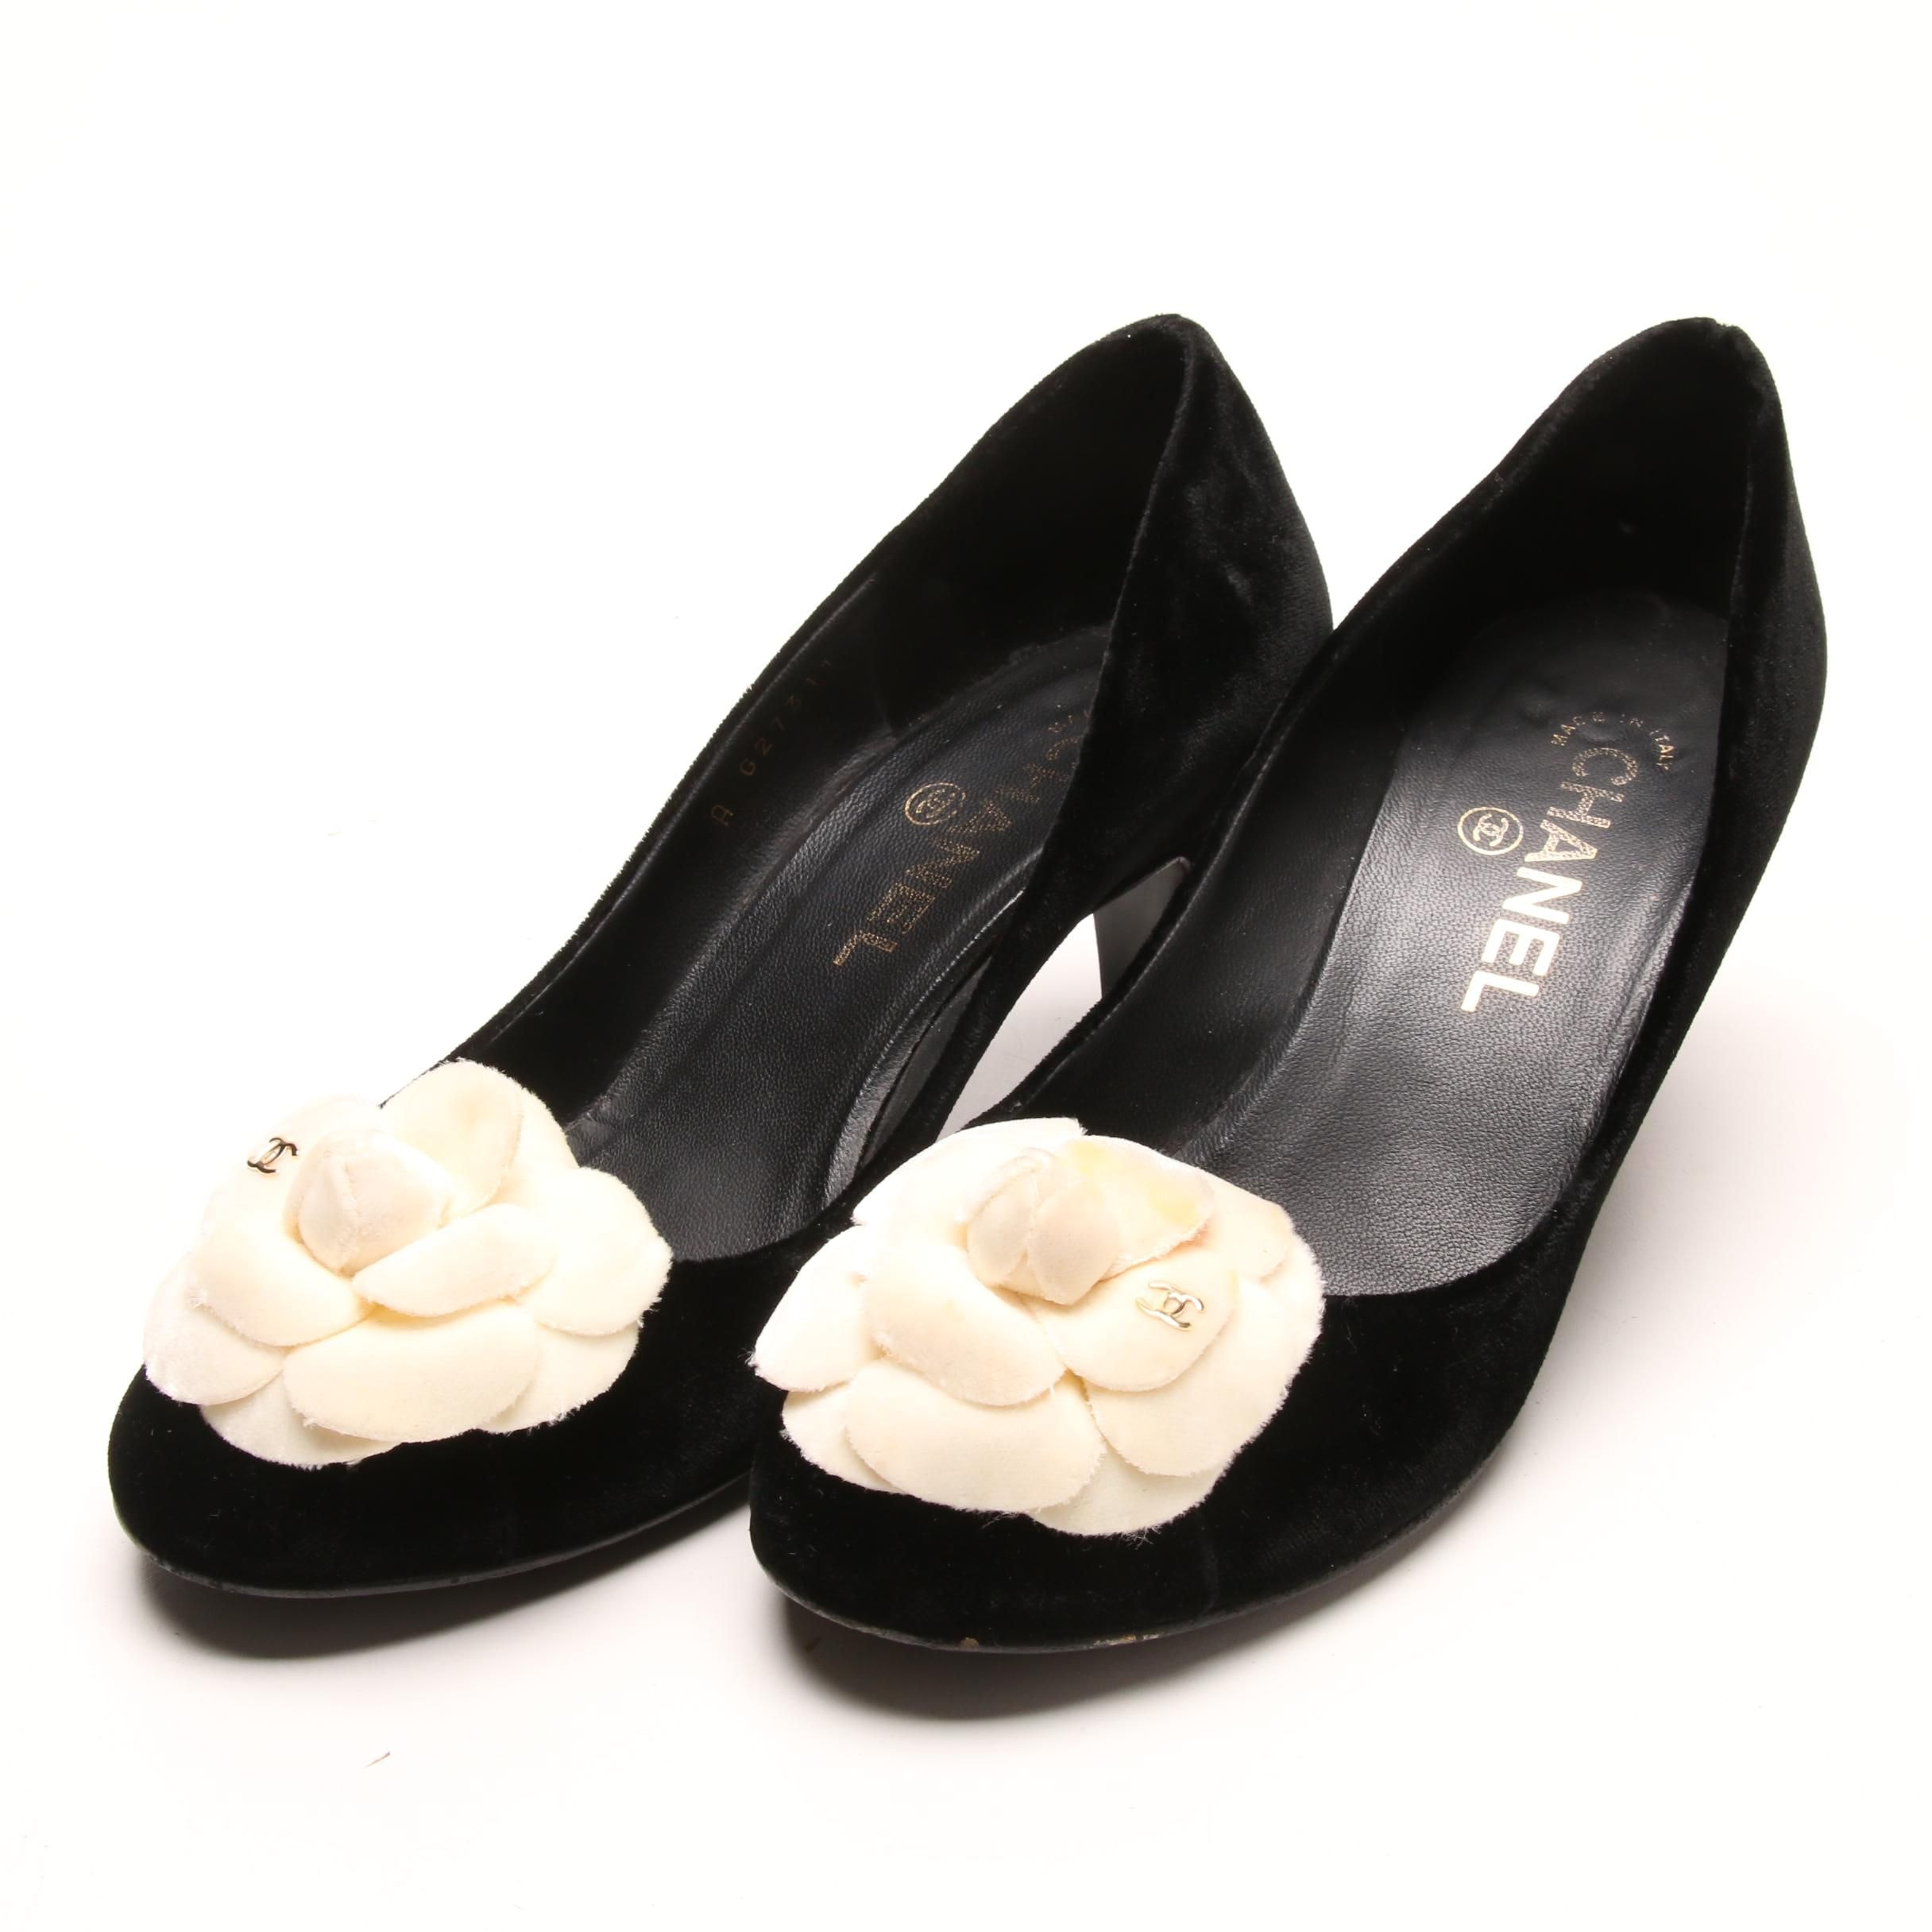 Chanel Black Velvet and Rosette Pumps